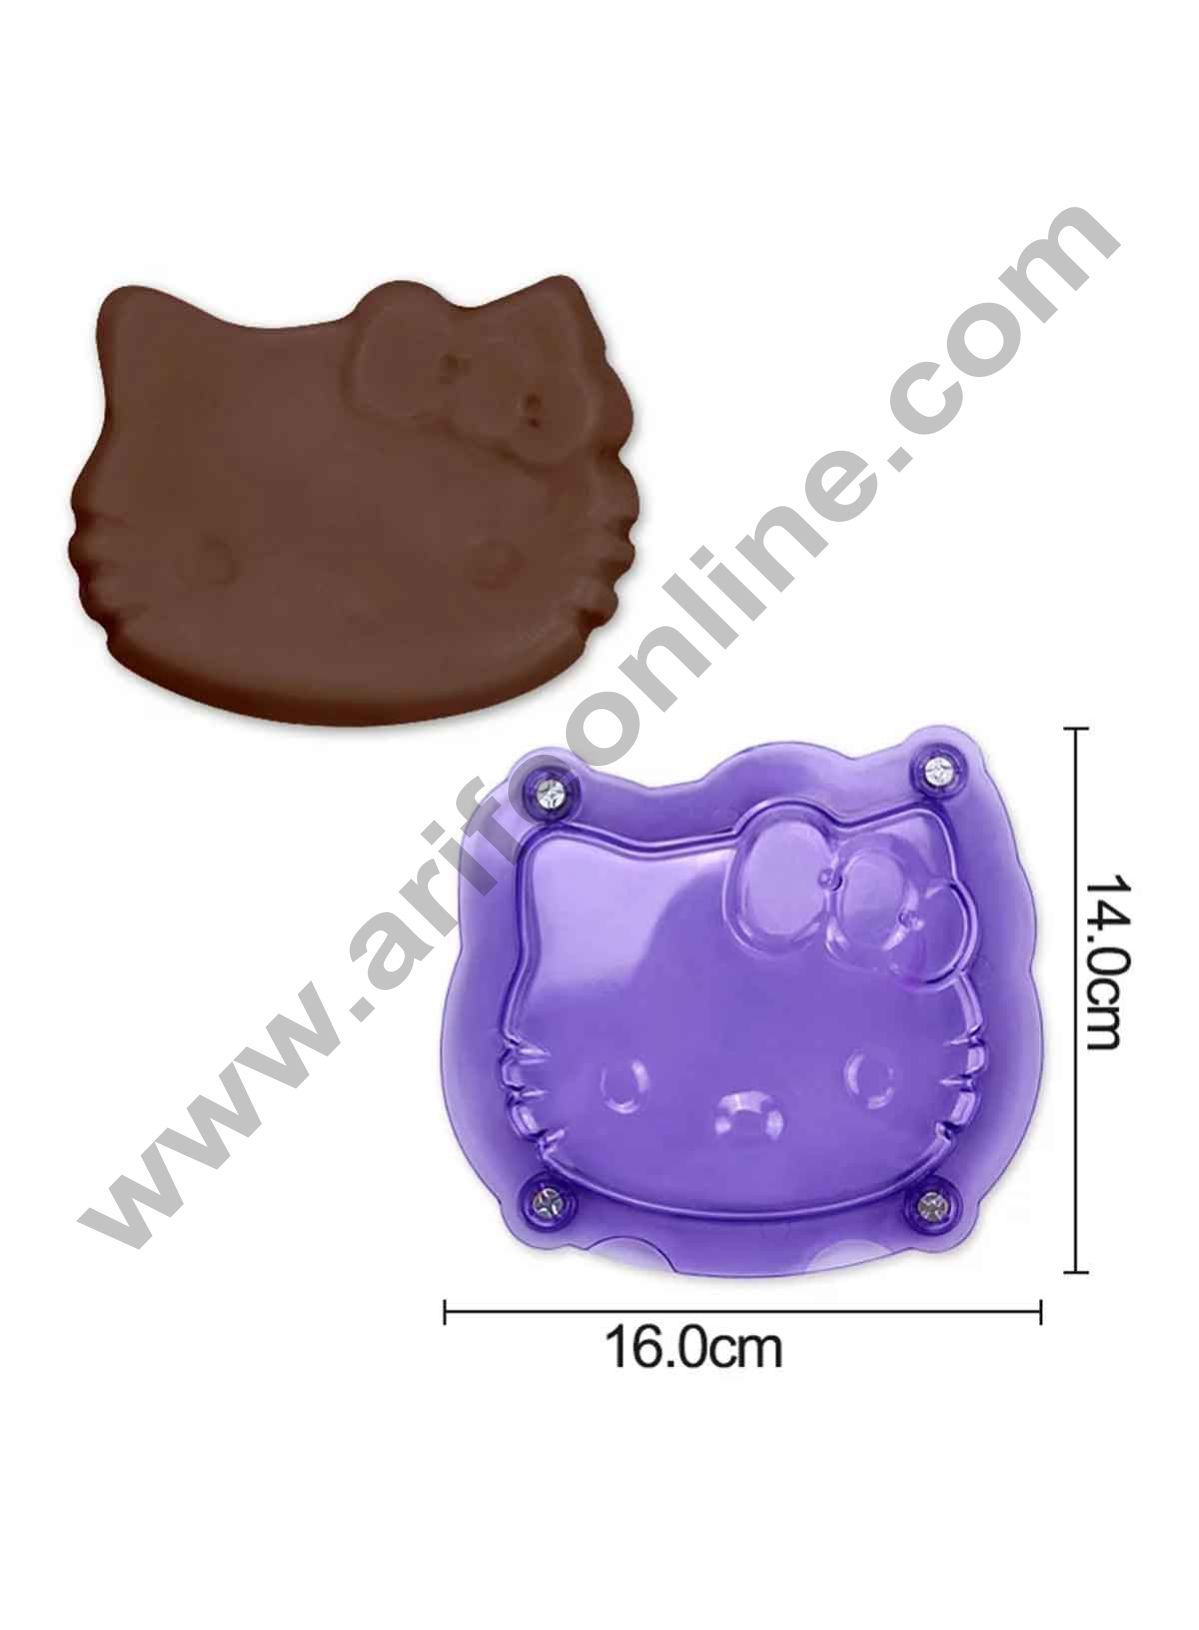 Cake Decor Polycarbonate 3D Hello Kitty Face Chocolate Mold Cake Decorating Chocolate Mould Tools